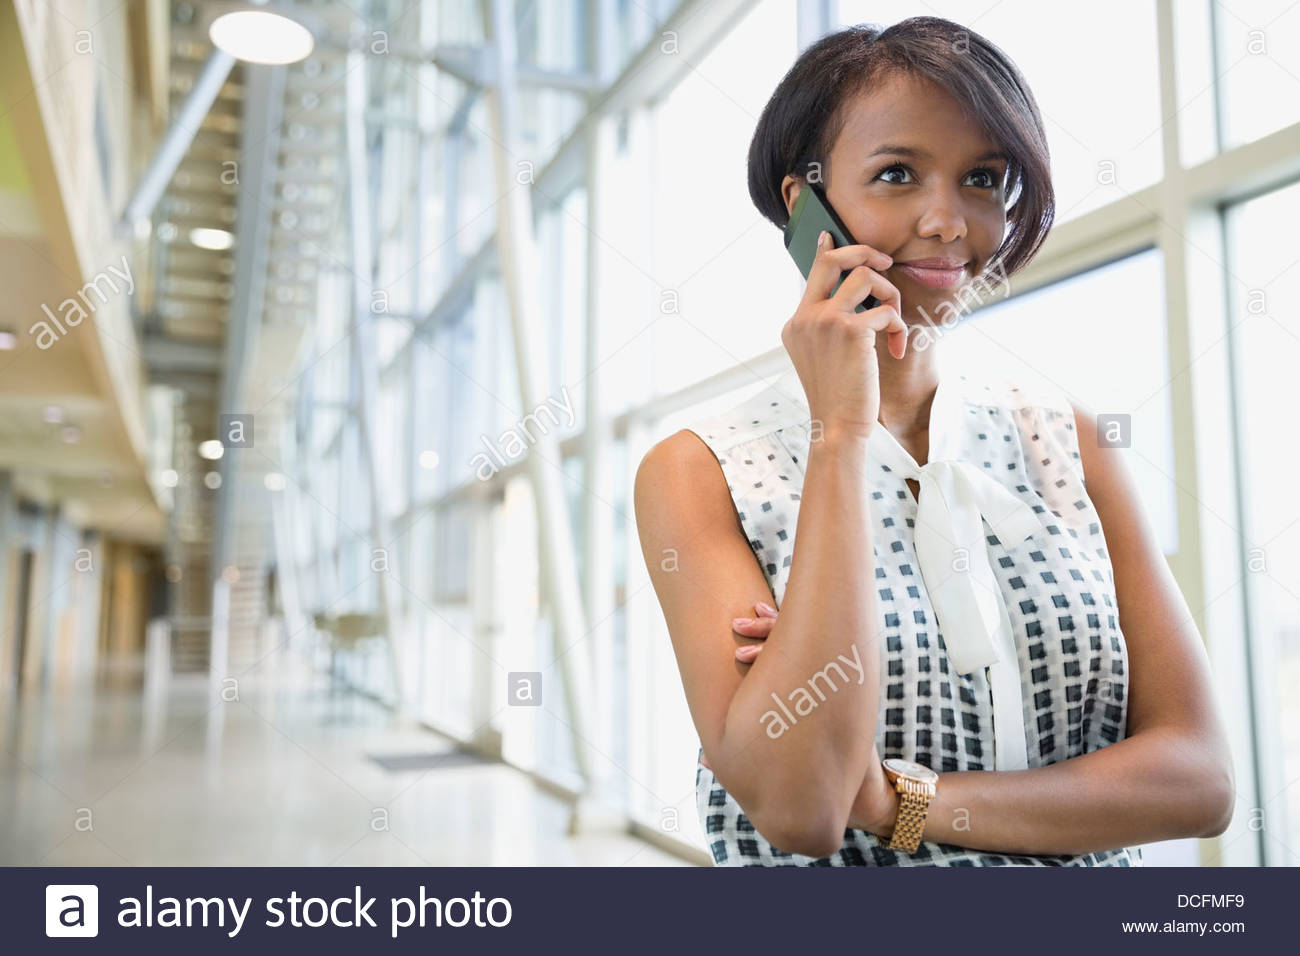 Business woman using smart phone - Stock Image